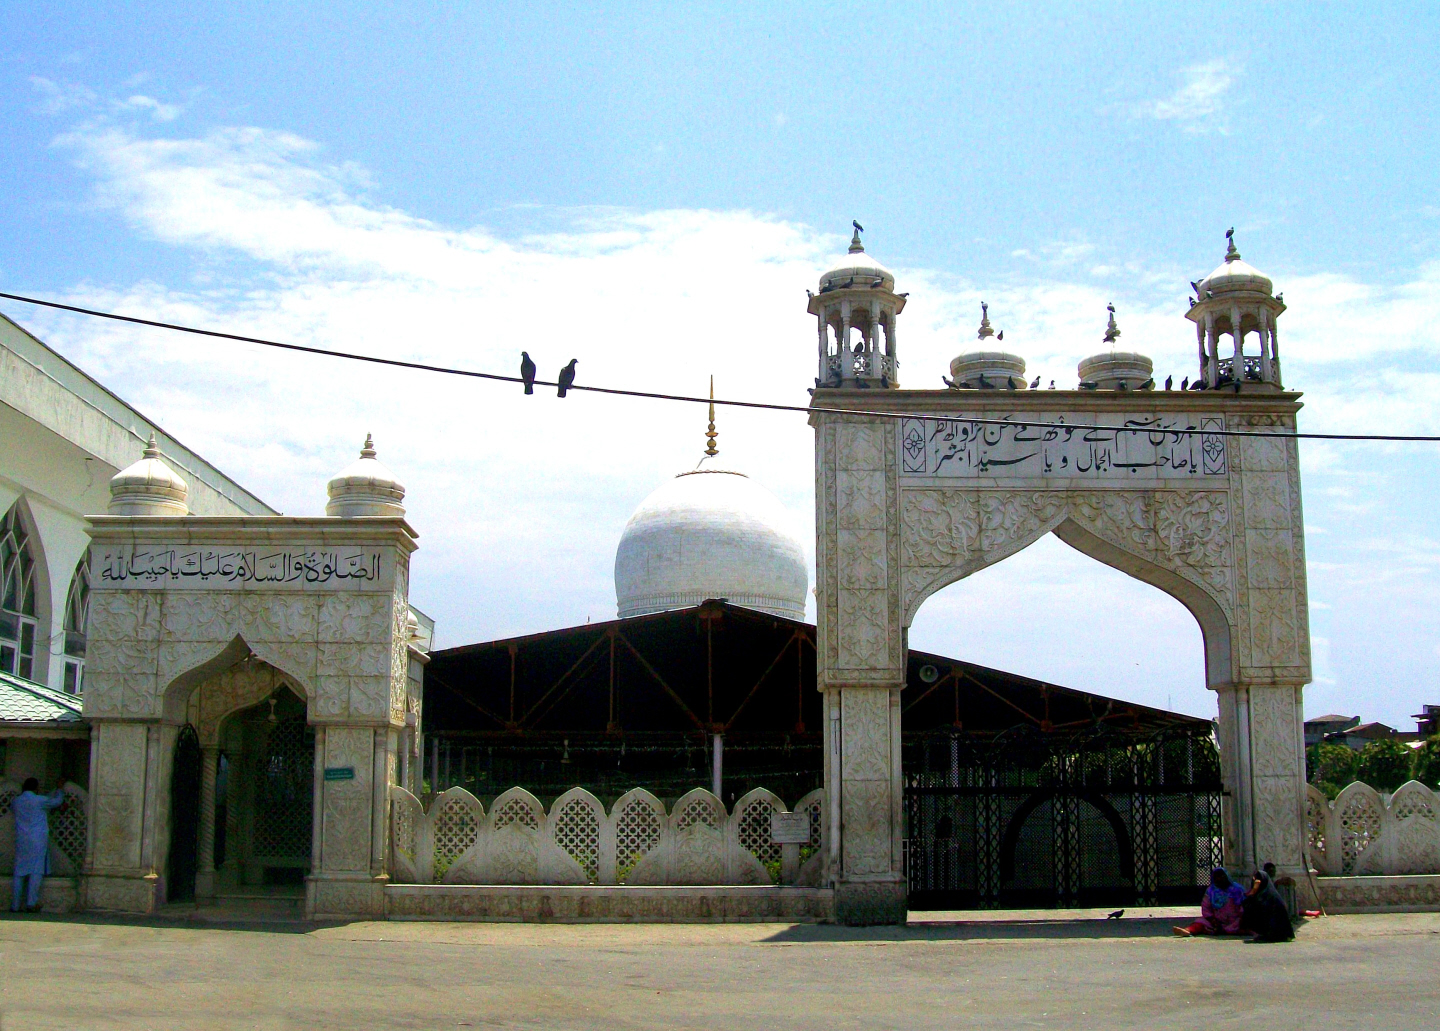 Hazrat Bal Mosque - (Contains a Hair of the Holy Prophet's Beard) - Srinagar